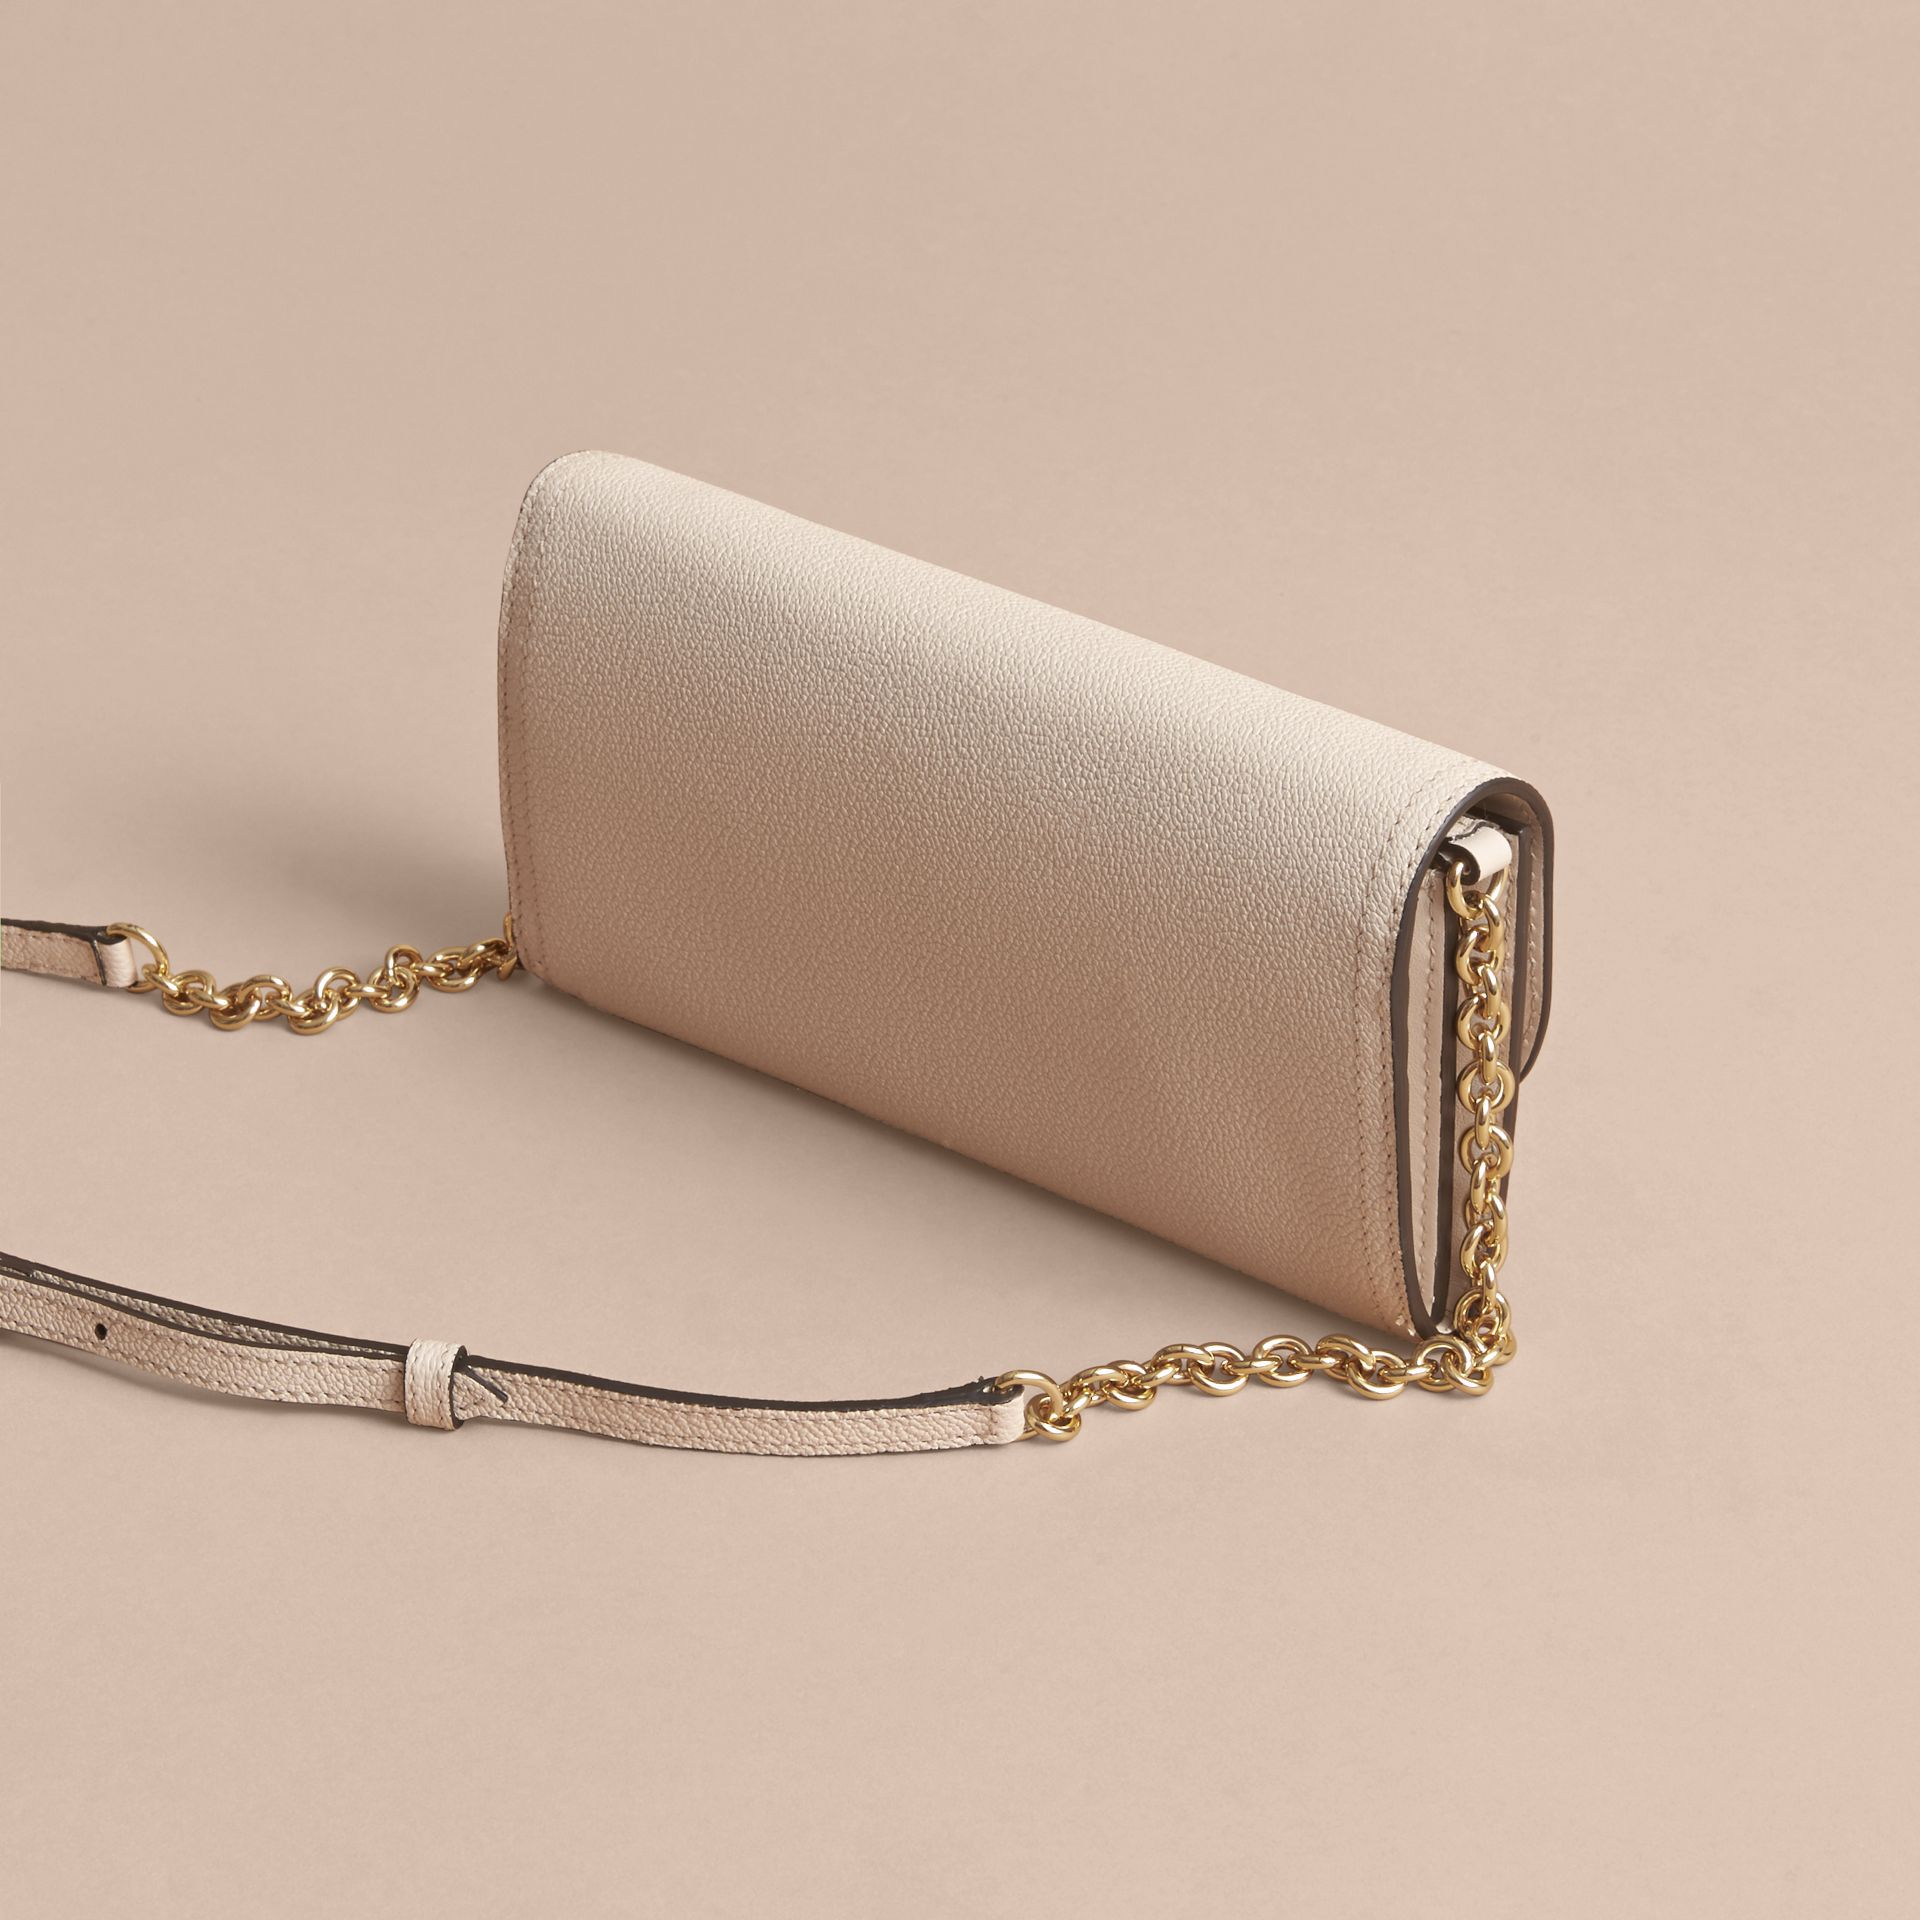 Leather Wallet with Chain in Limestone - Women | Burberry - gallery image 4